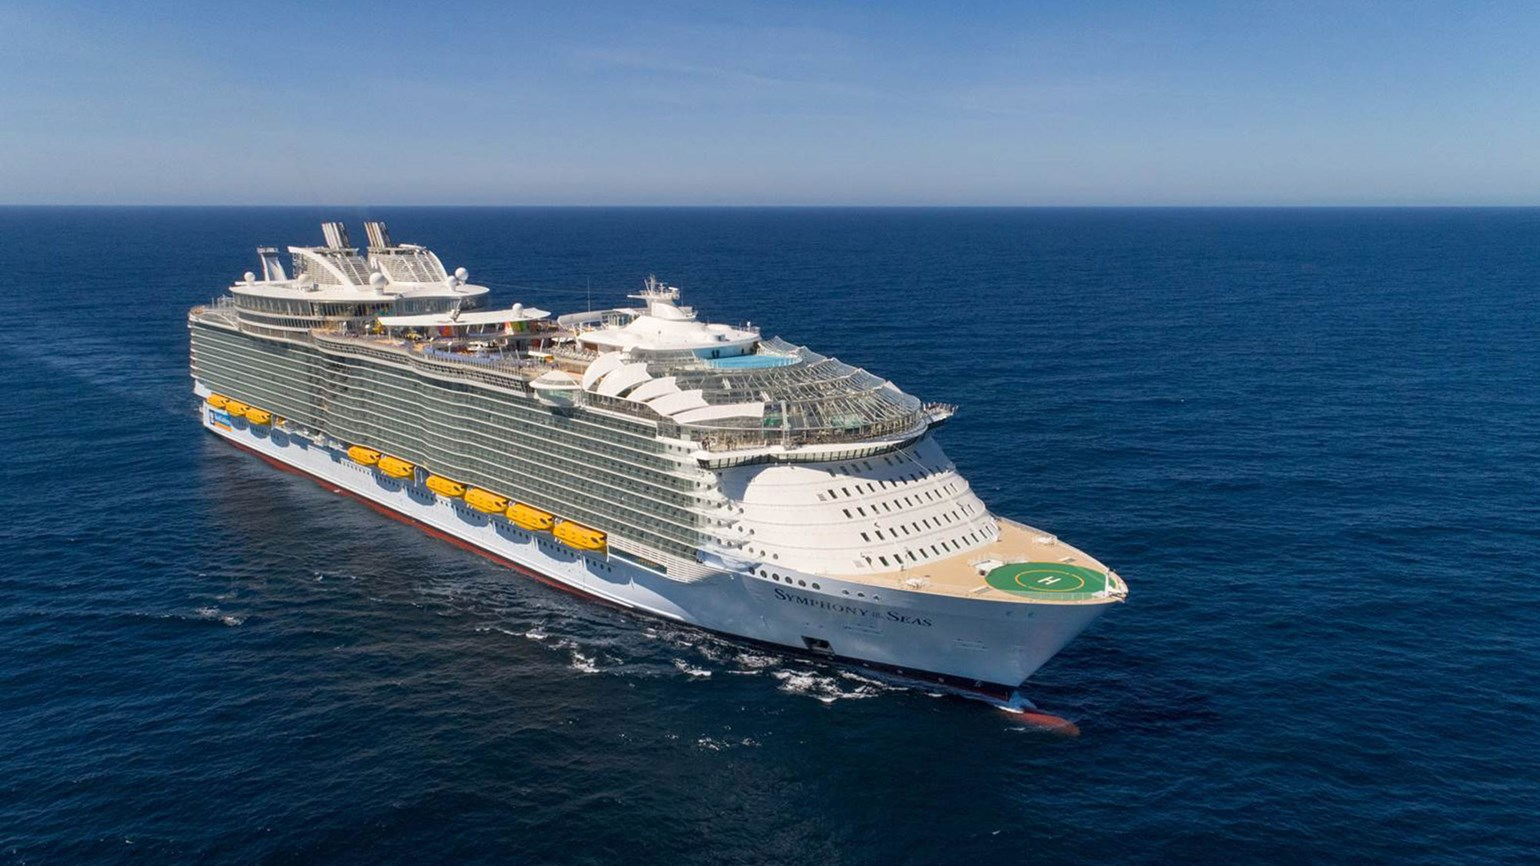 Royal Caribbean: More than 150,000 people applied for test sailings